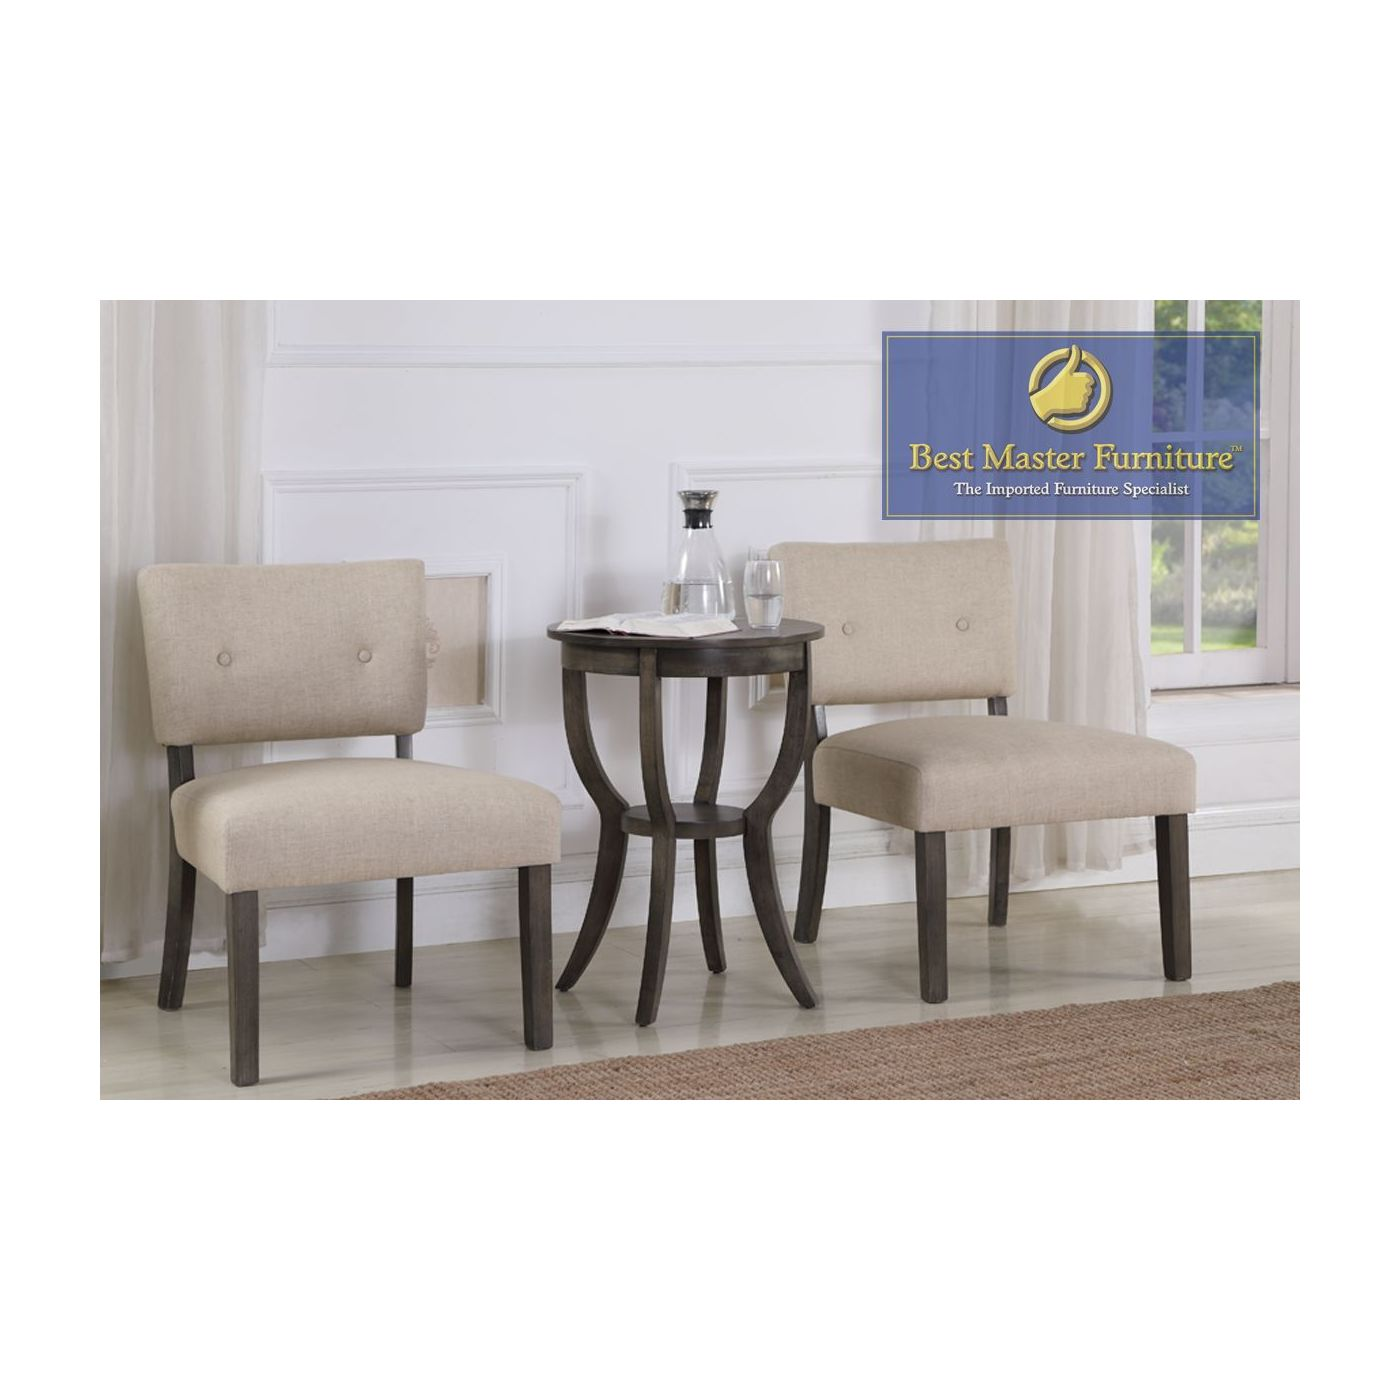 accent chair table set best master furniture with cocktail and end sets hampton bay wicker unfinished desk slim behind sofa diy coffee ideas room essentials hanging lights mosaic